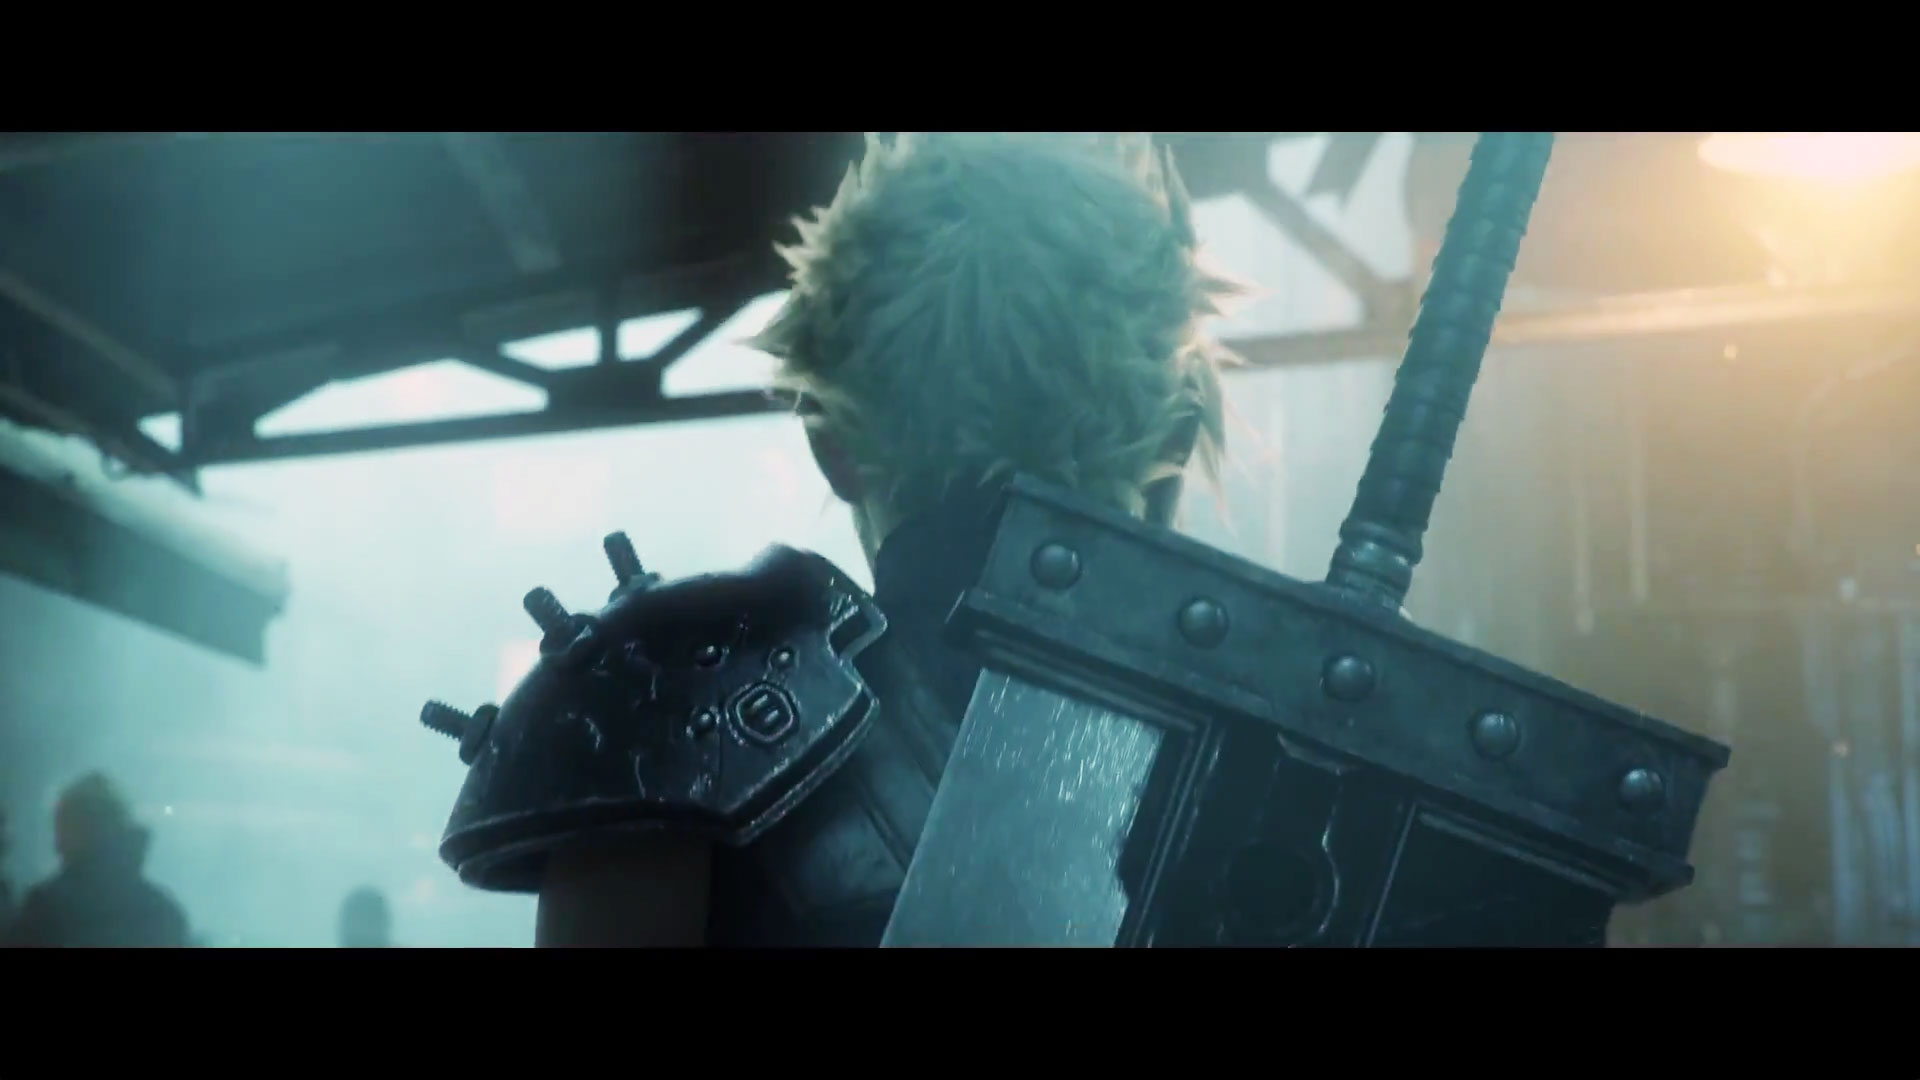 The Reason Final Fantasy VII Remake's Multi-Part Announcement is Troubling